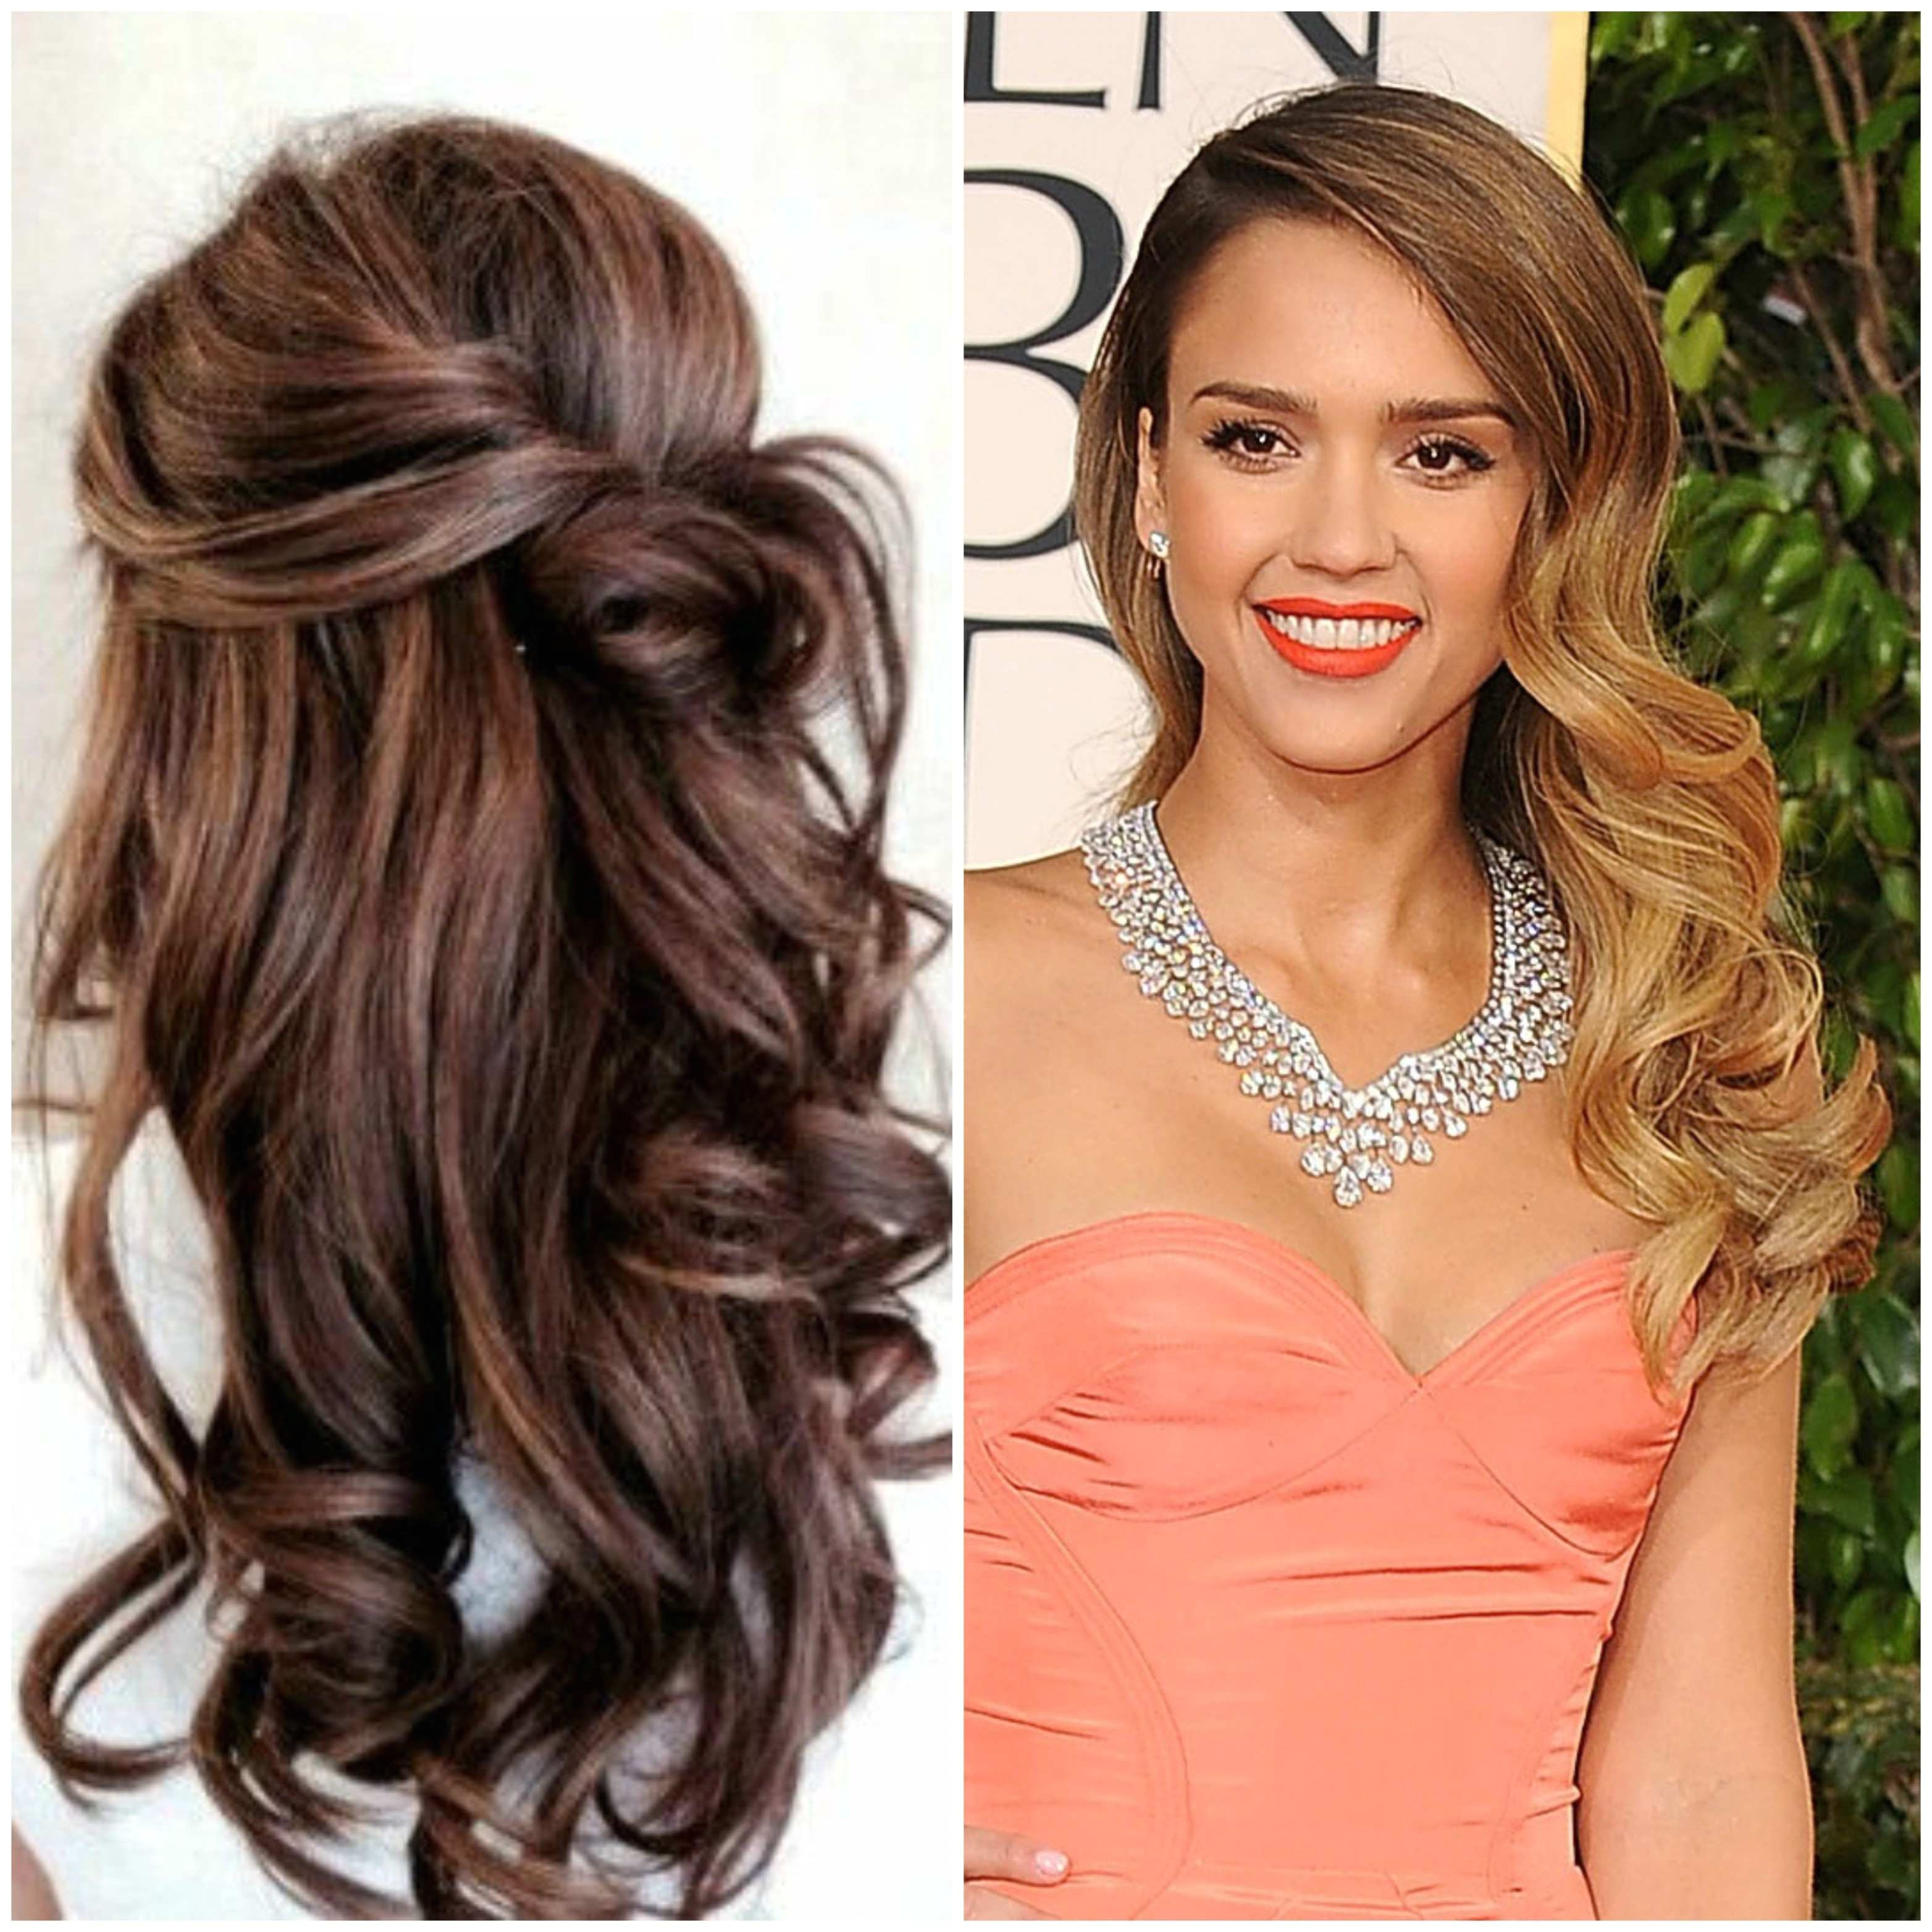 79 Fresh Girls Hairstyles for Parties Gallery